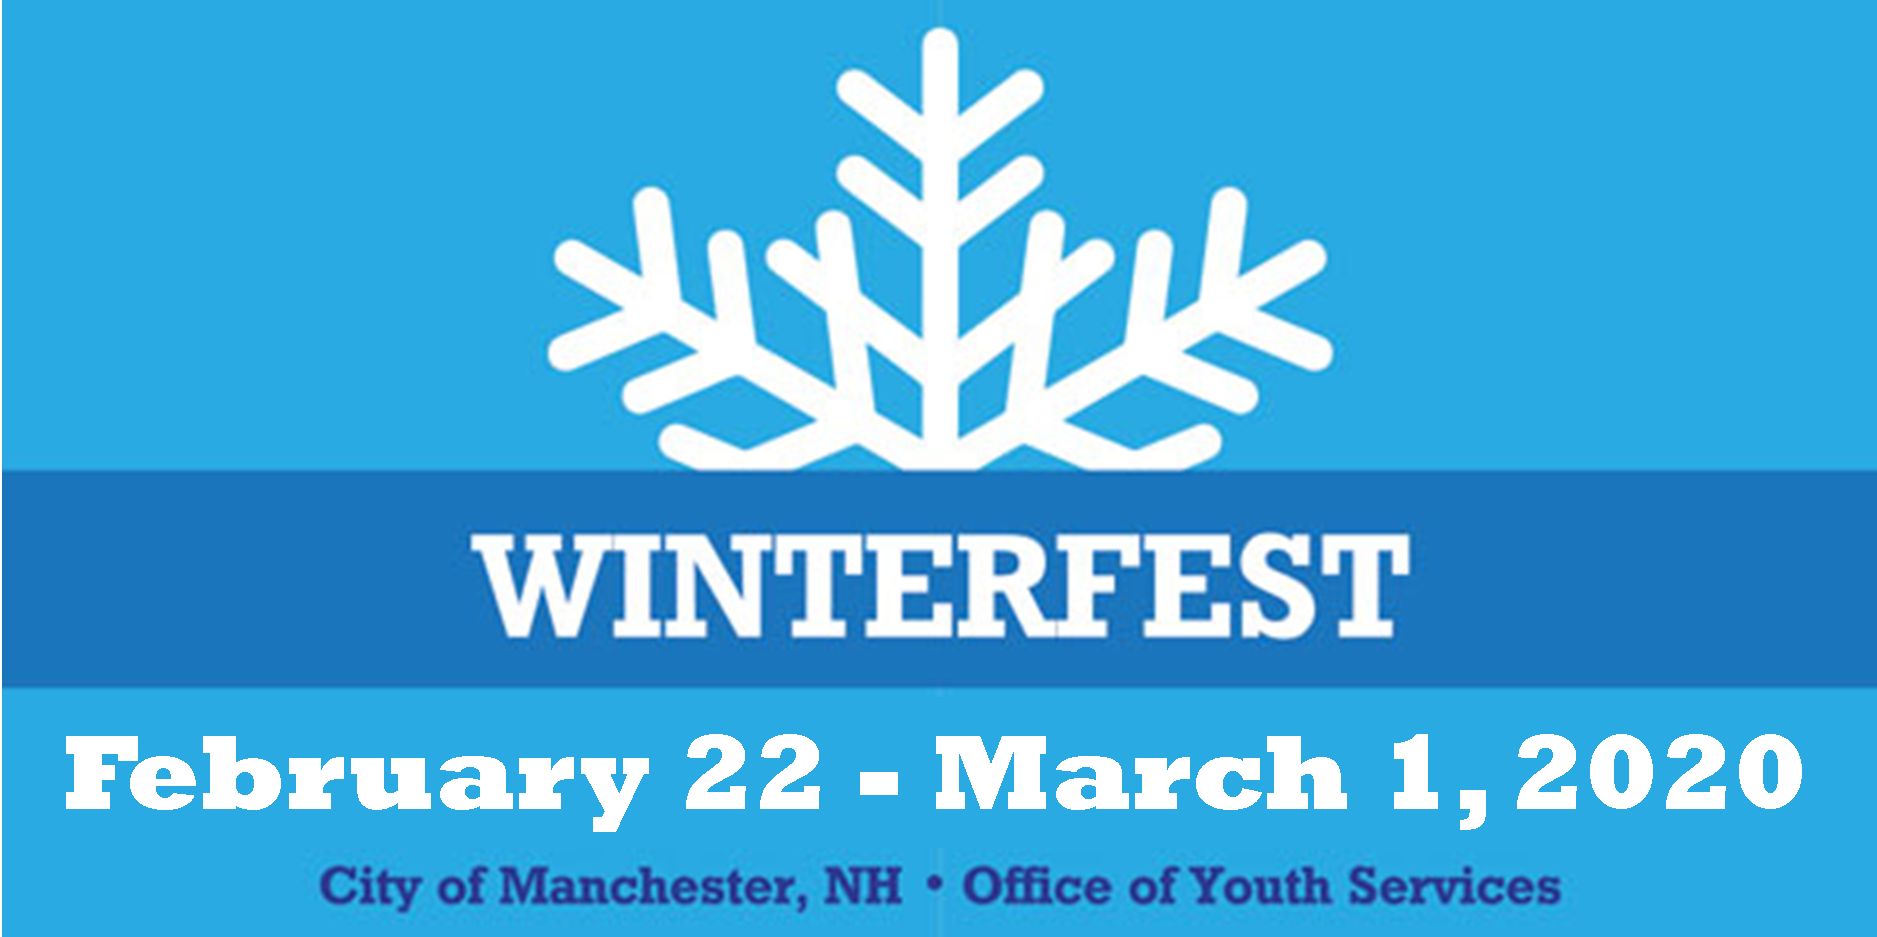 Winterfest Fenruary 23, 2019 - March 3, 2019 City of Manchester, NH Office of Youth Services